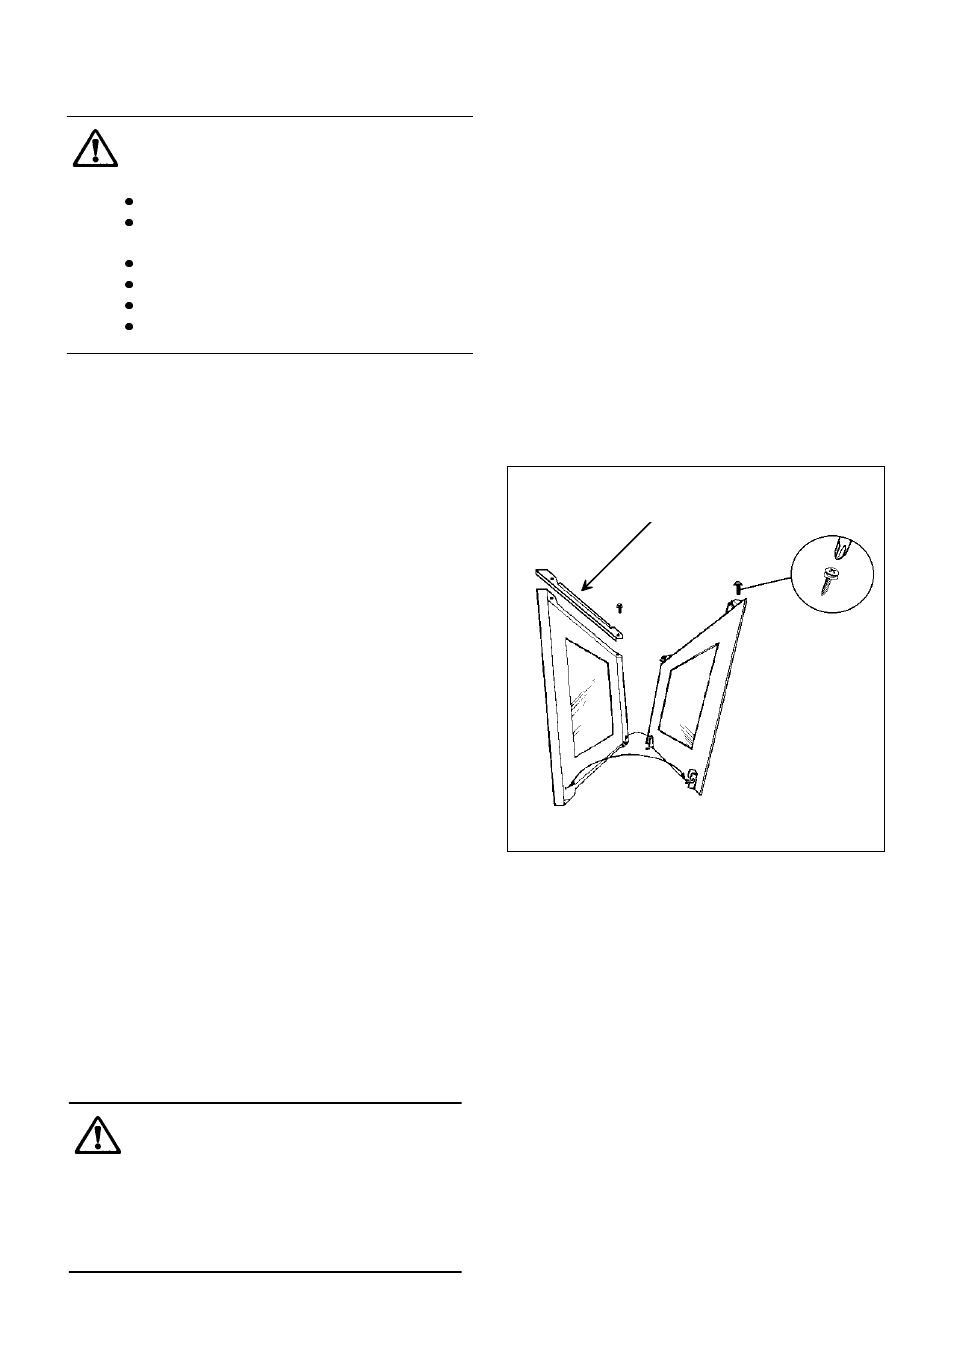 Cleaning the outer and inner door glass panels glass electrolux cleaning the outer and inner door glass panels glass electrolux edb710 user manual page 27 48 planetlyrics Gallery